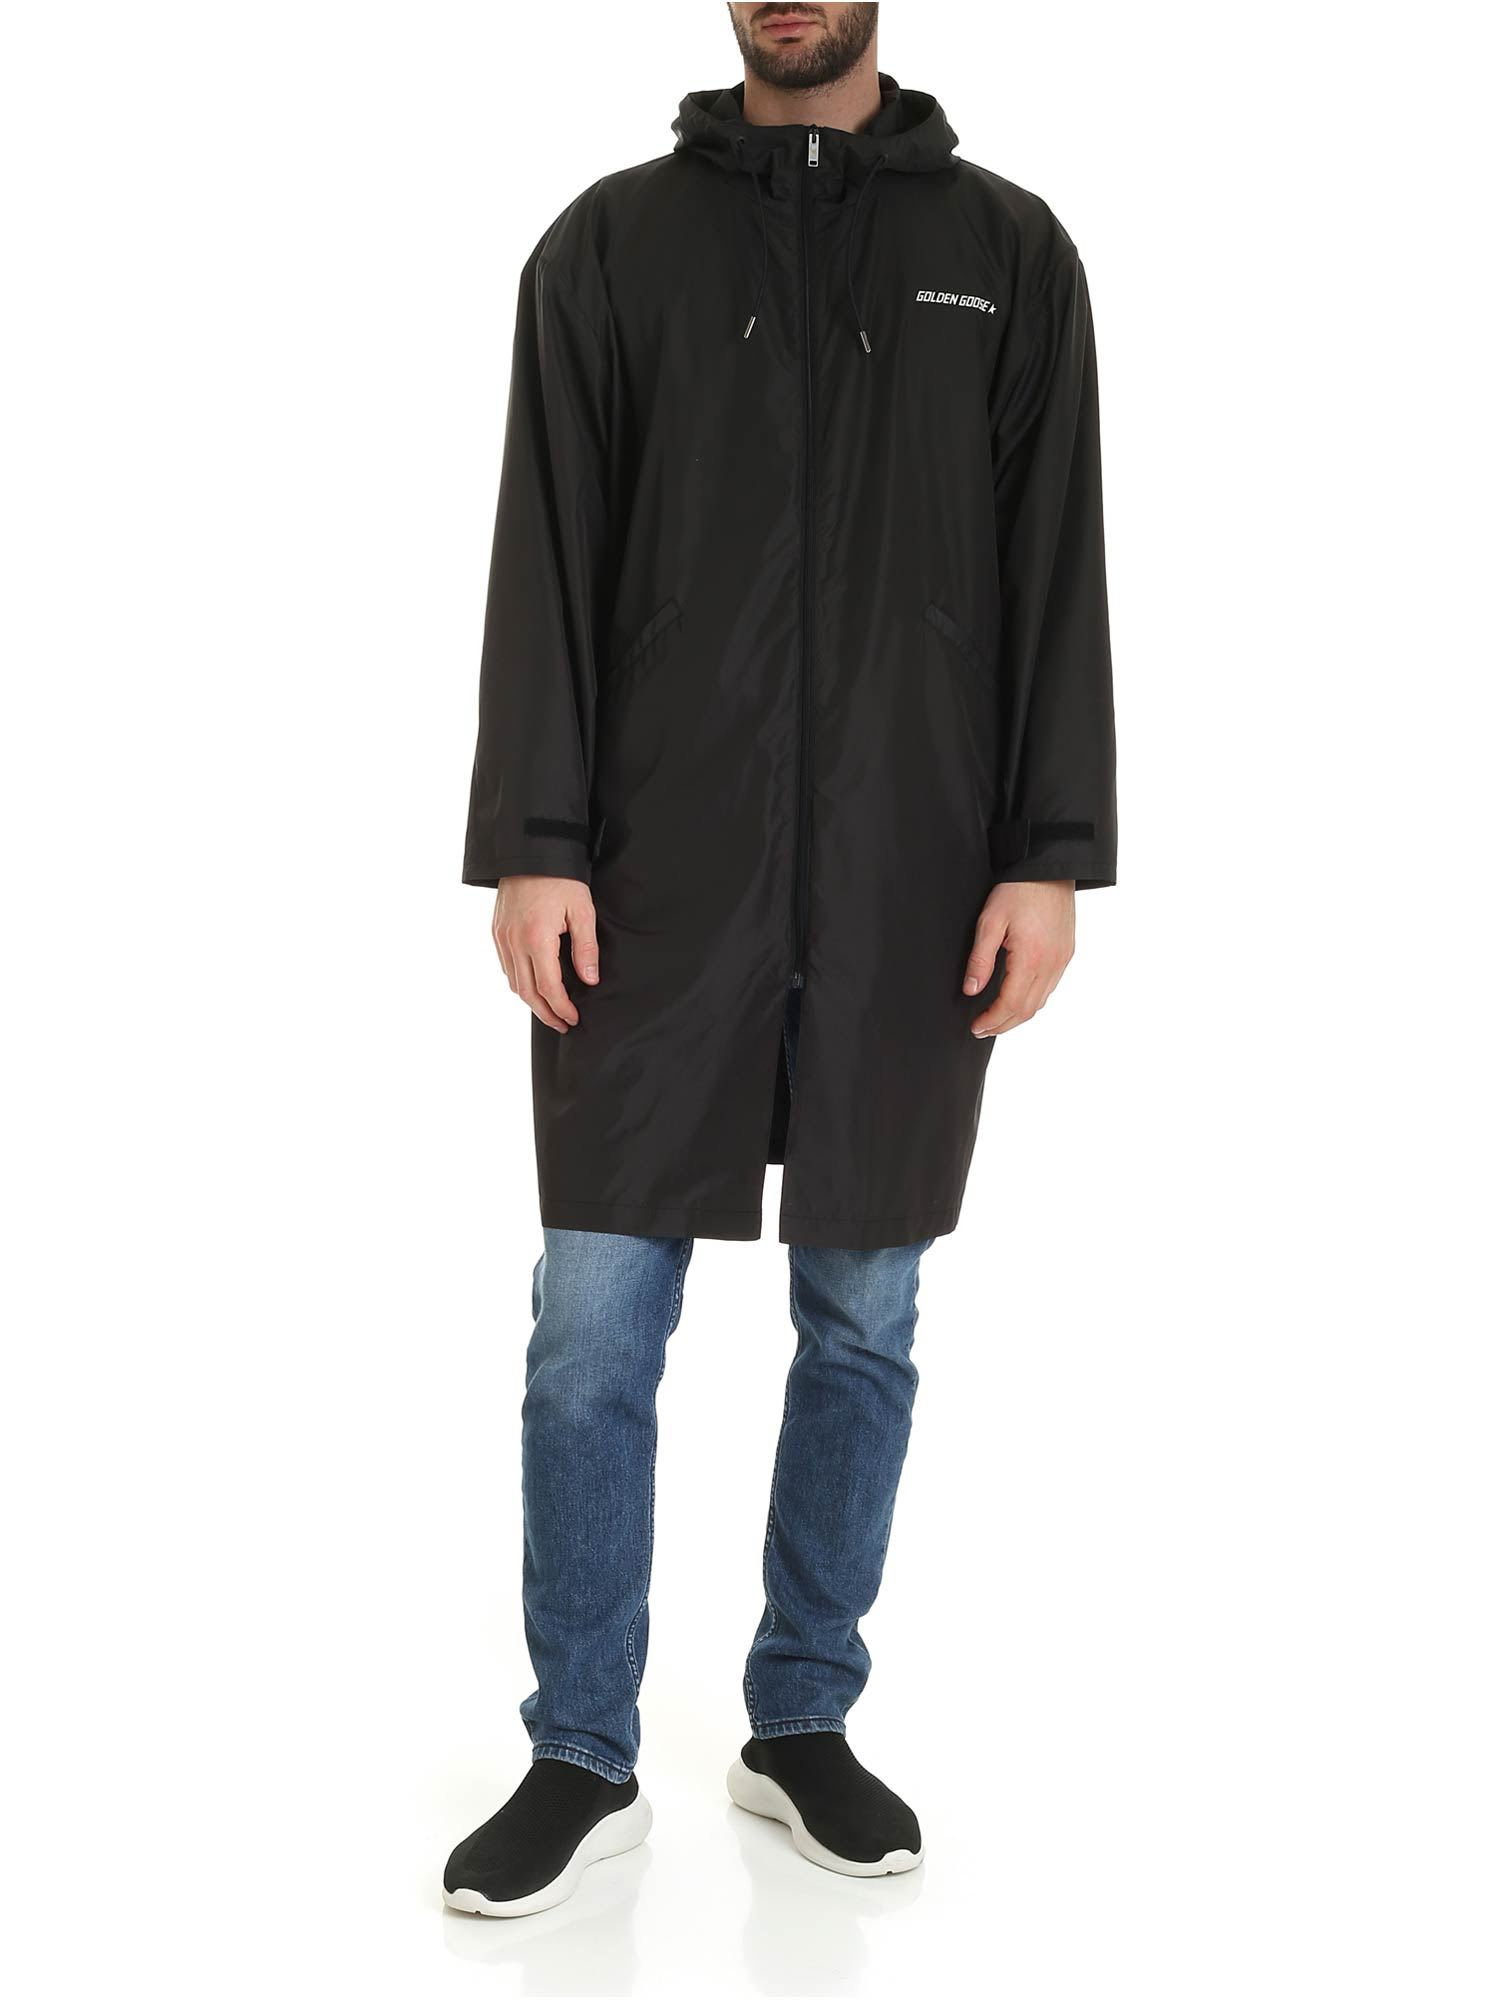 Landon Parka from Golden Goose: Black oversized raincoat with frontal small white logo and white print on back. -fit oversized -composition: 100% nylon -made in italy